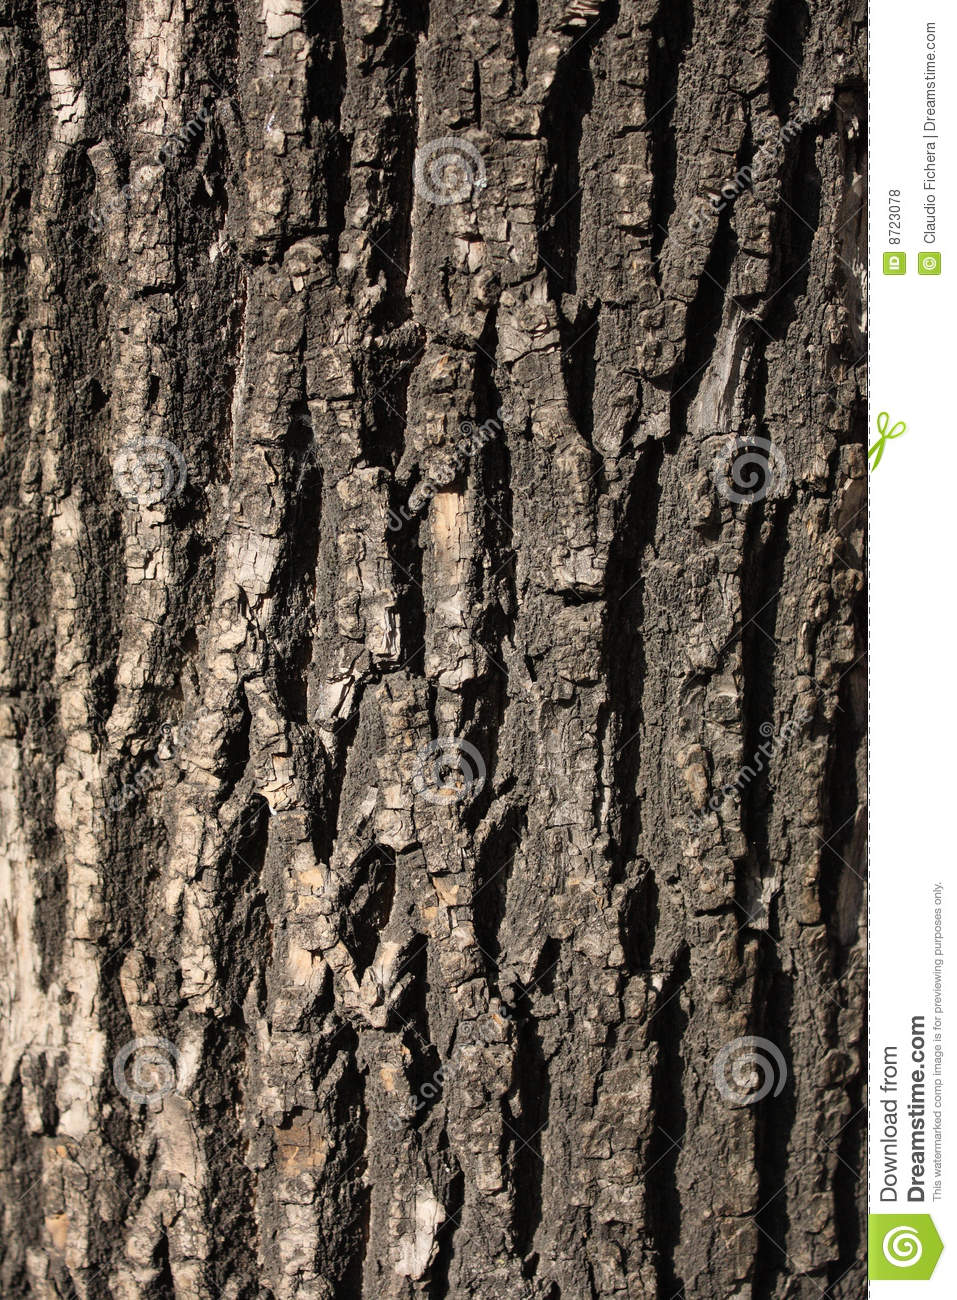 A Rough Guide To Types Of Scientific Evidence: Rough Texture Of Tree Stock Photo. Image Of Rough, Tree